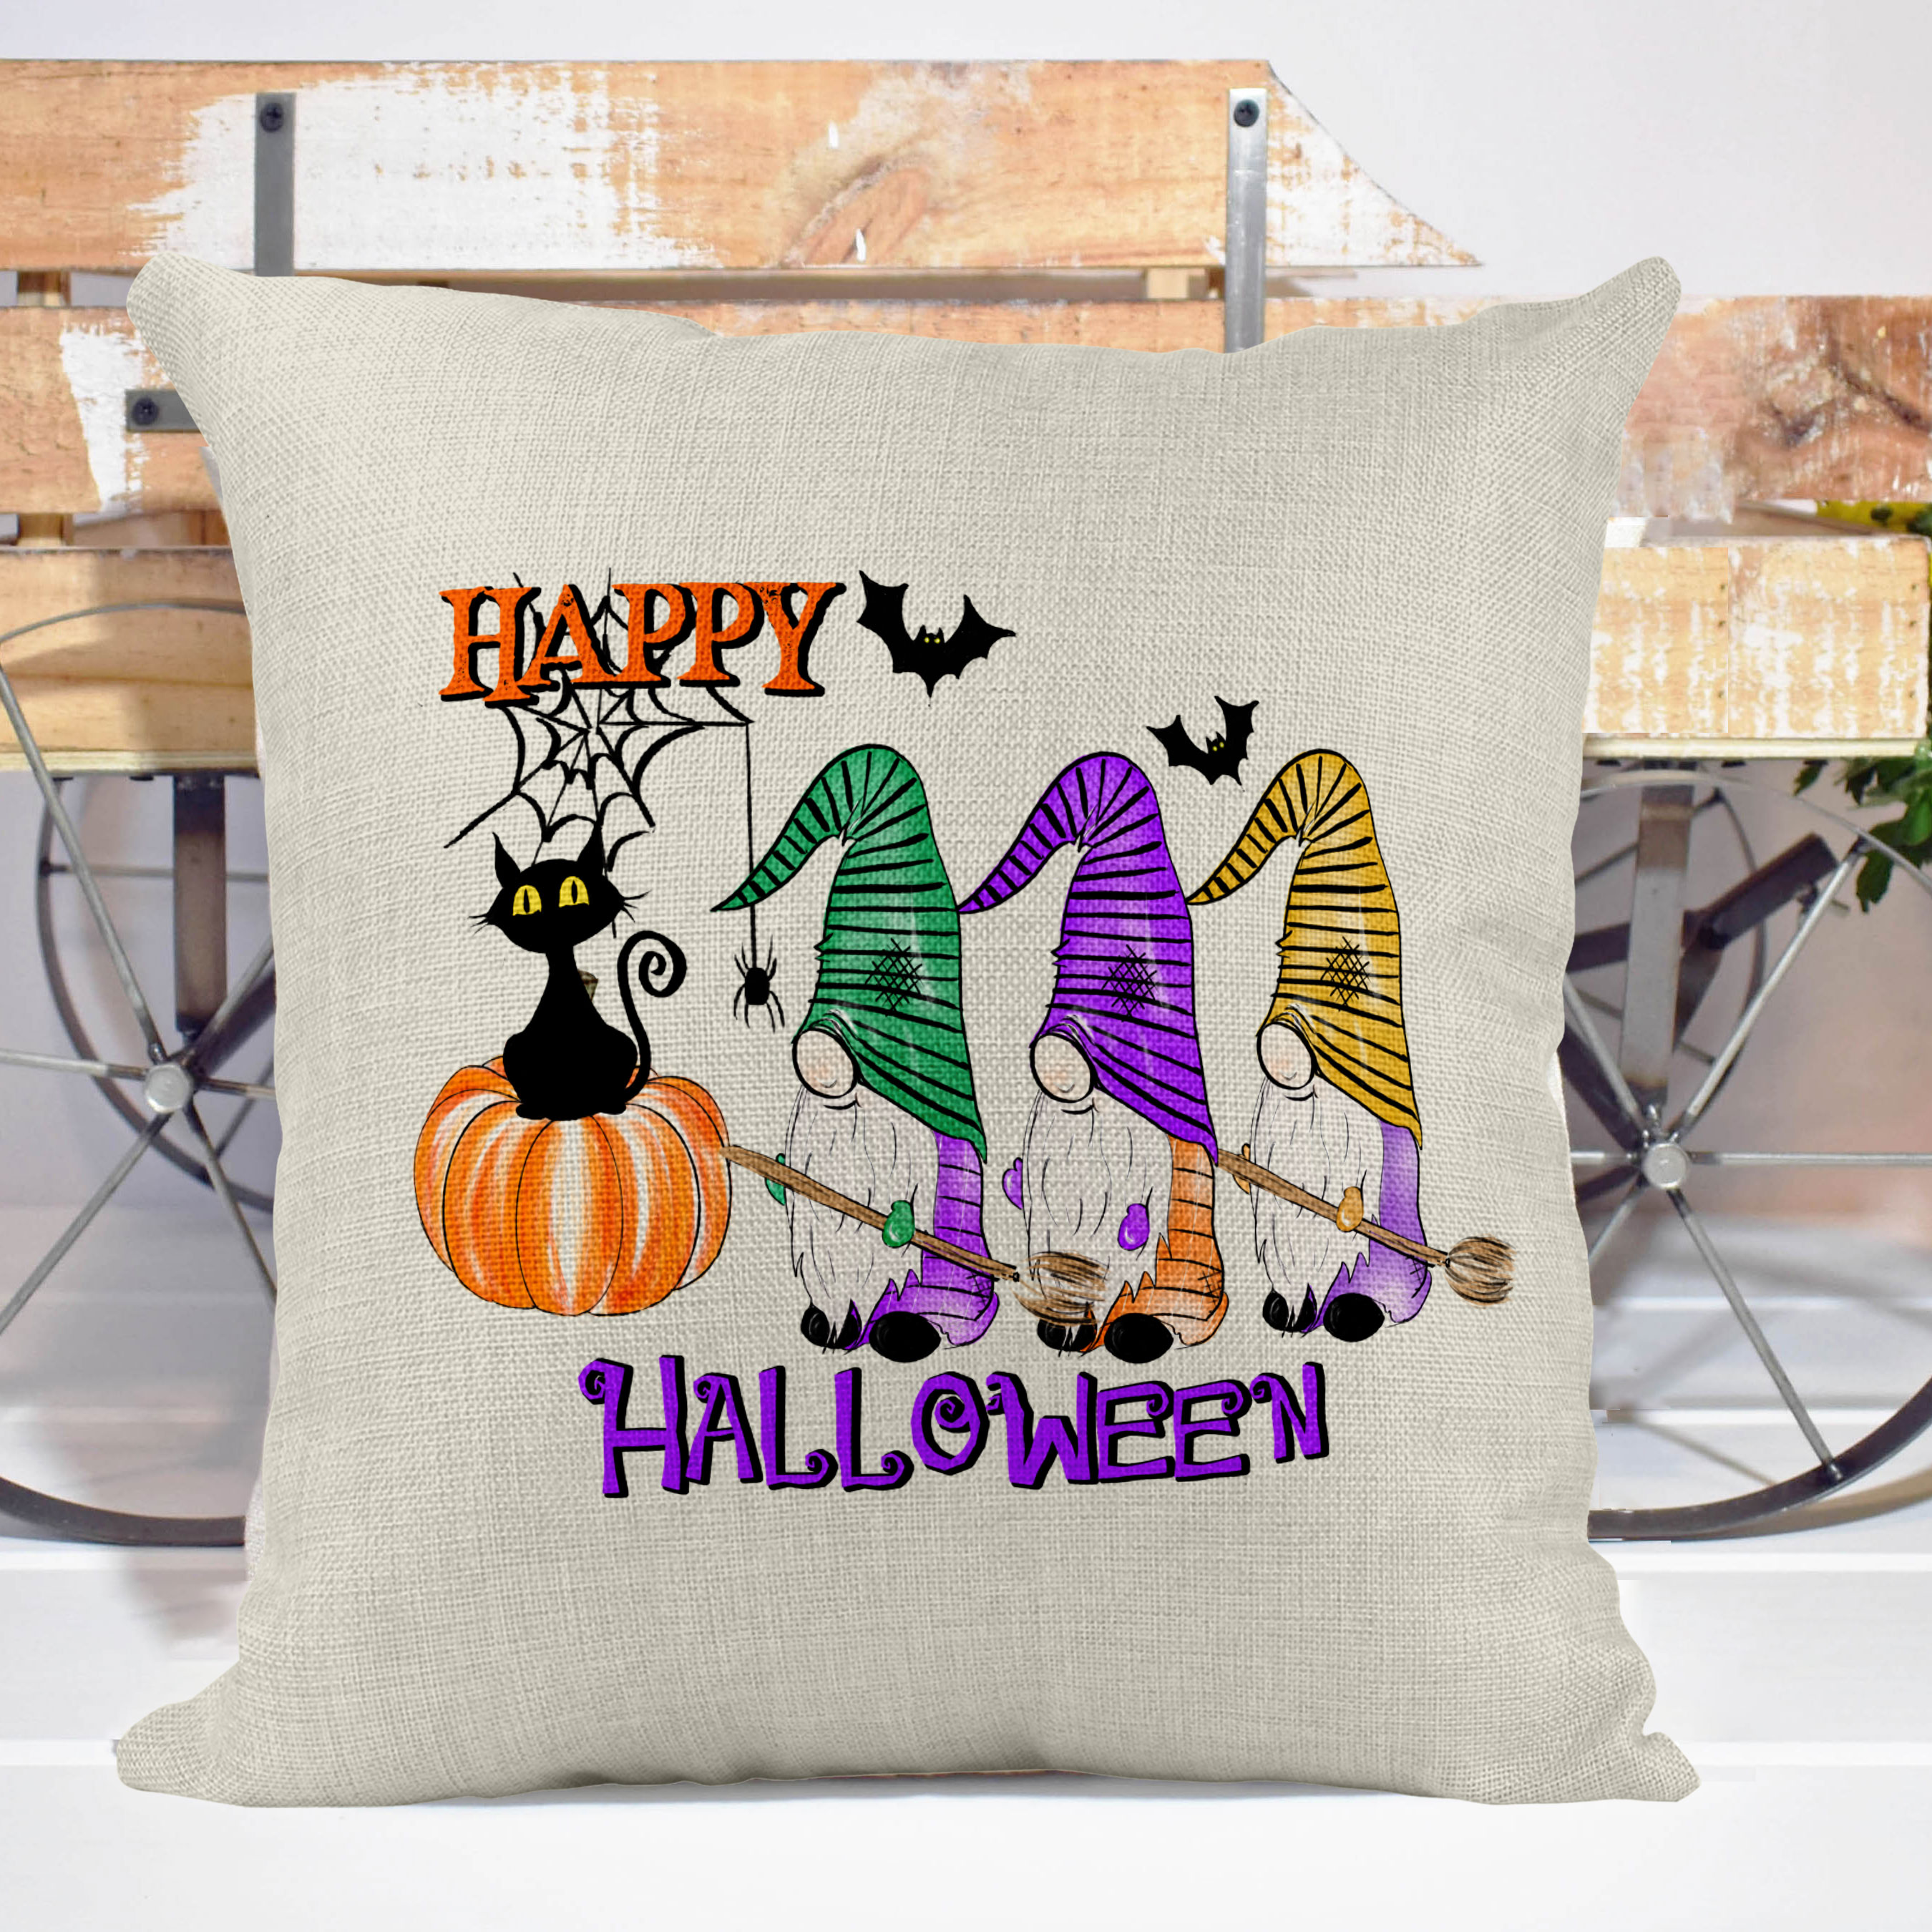 Happy Halloween Poly Linen Pillow Cover Halloween Decor Halloween Pillows Decorative Throw Pillow Farm House Style Decorative Pillow